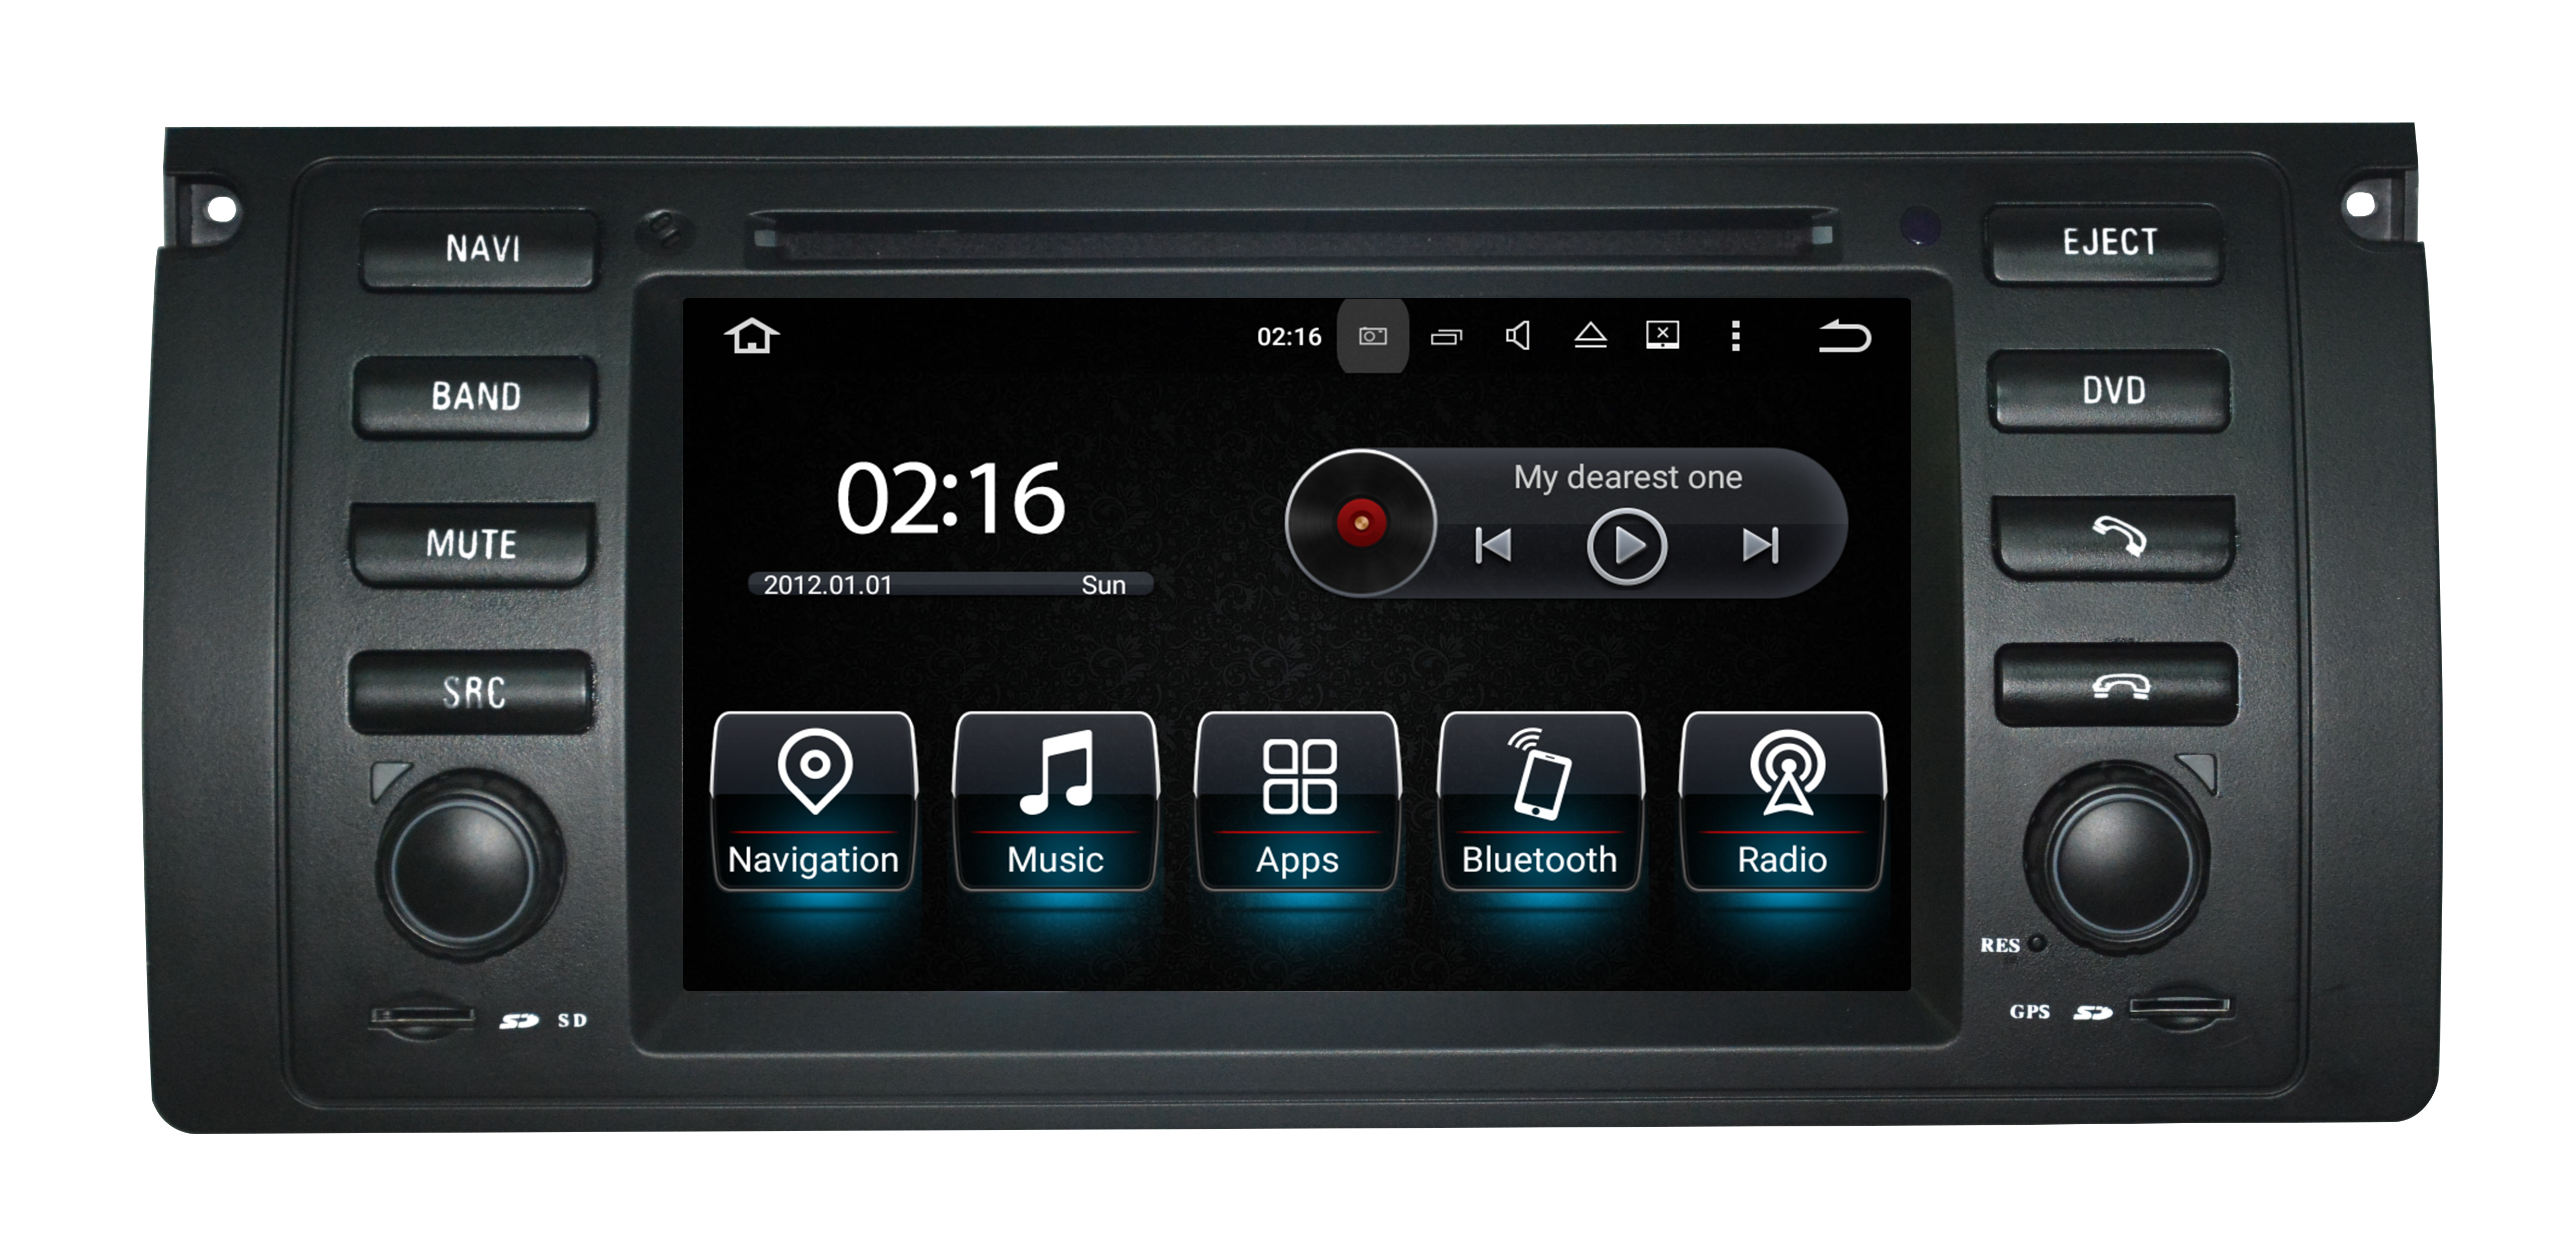 Autoradio AGW92 GPS WIFI DVD CD Bluetooth USB SD pour BMW E39 série 5 et X5 (Android processeur 2GHZ)